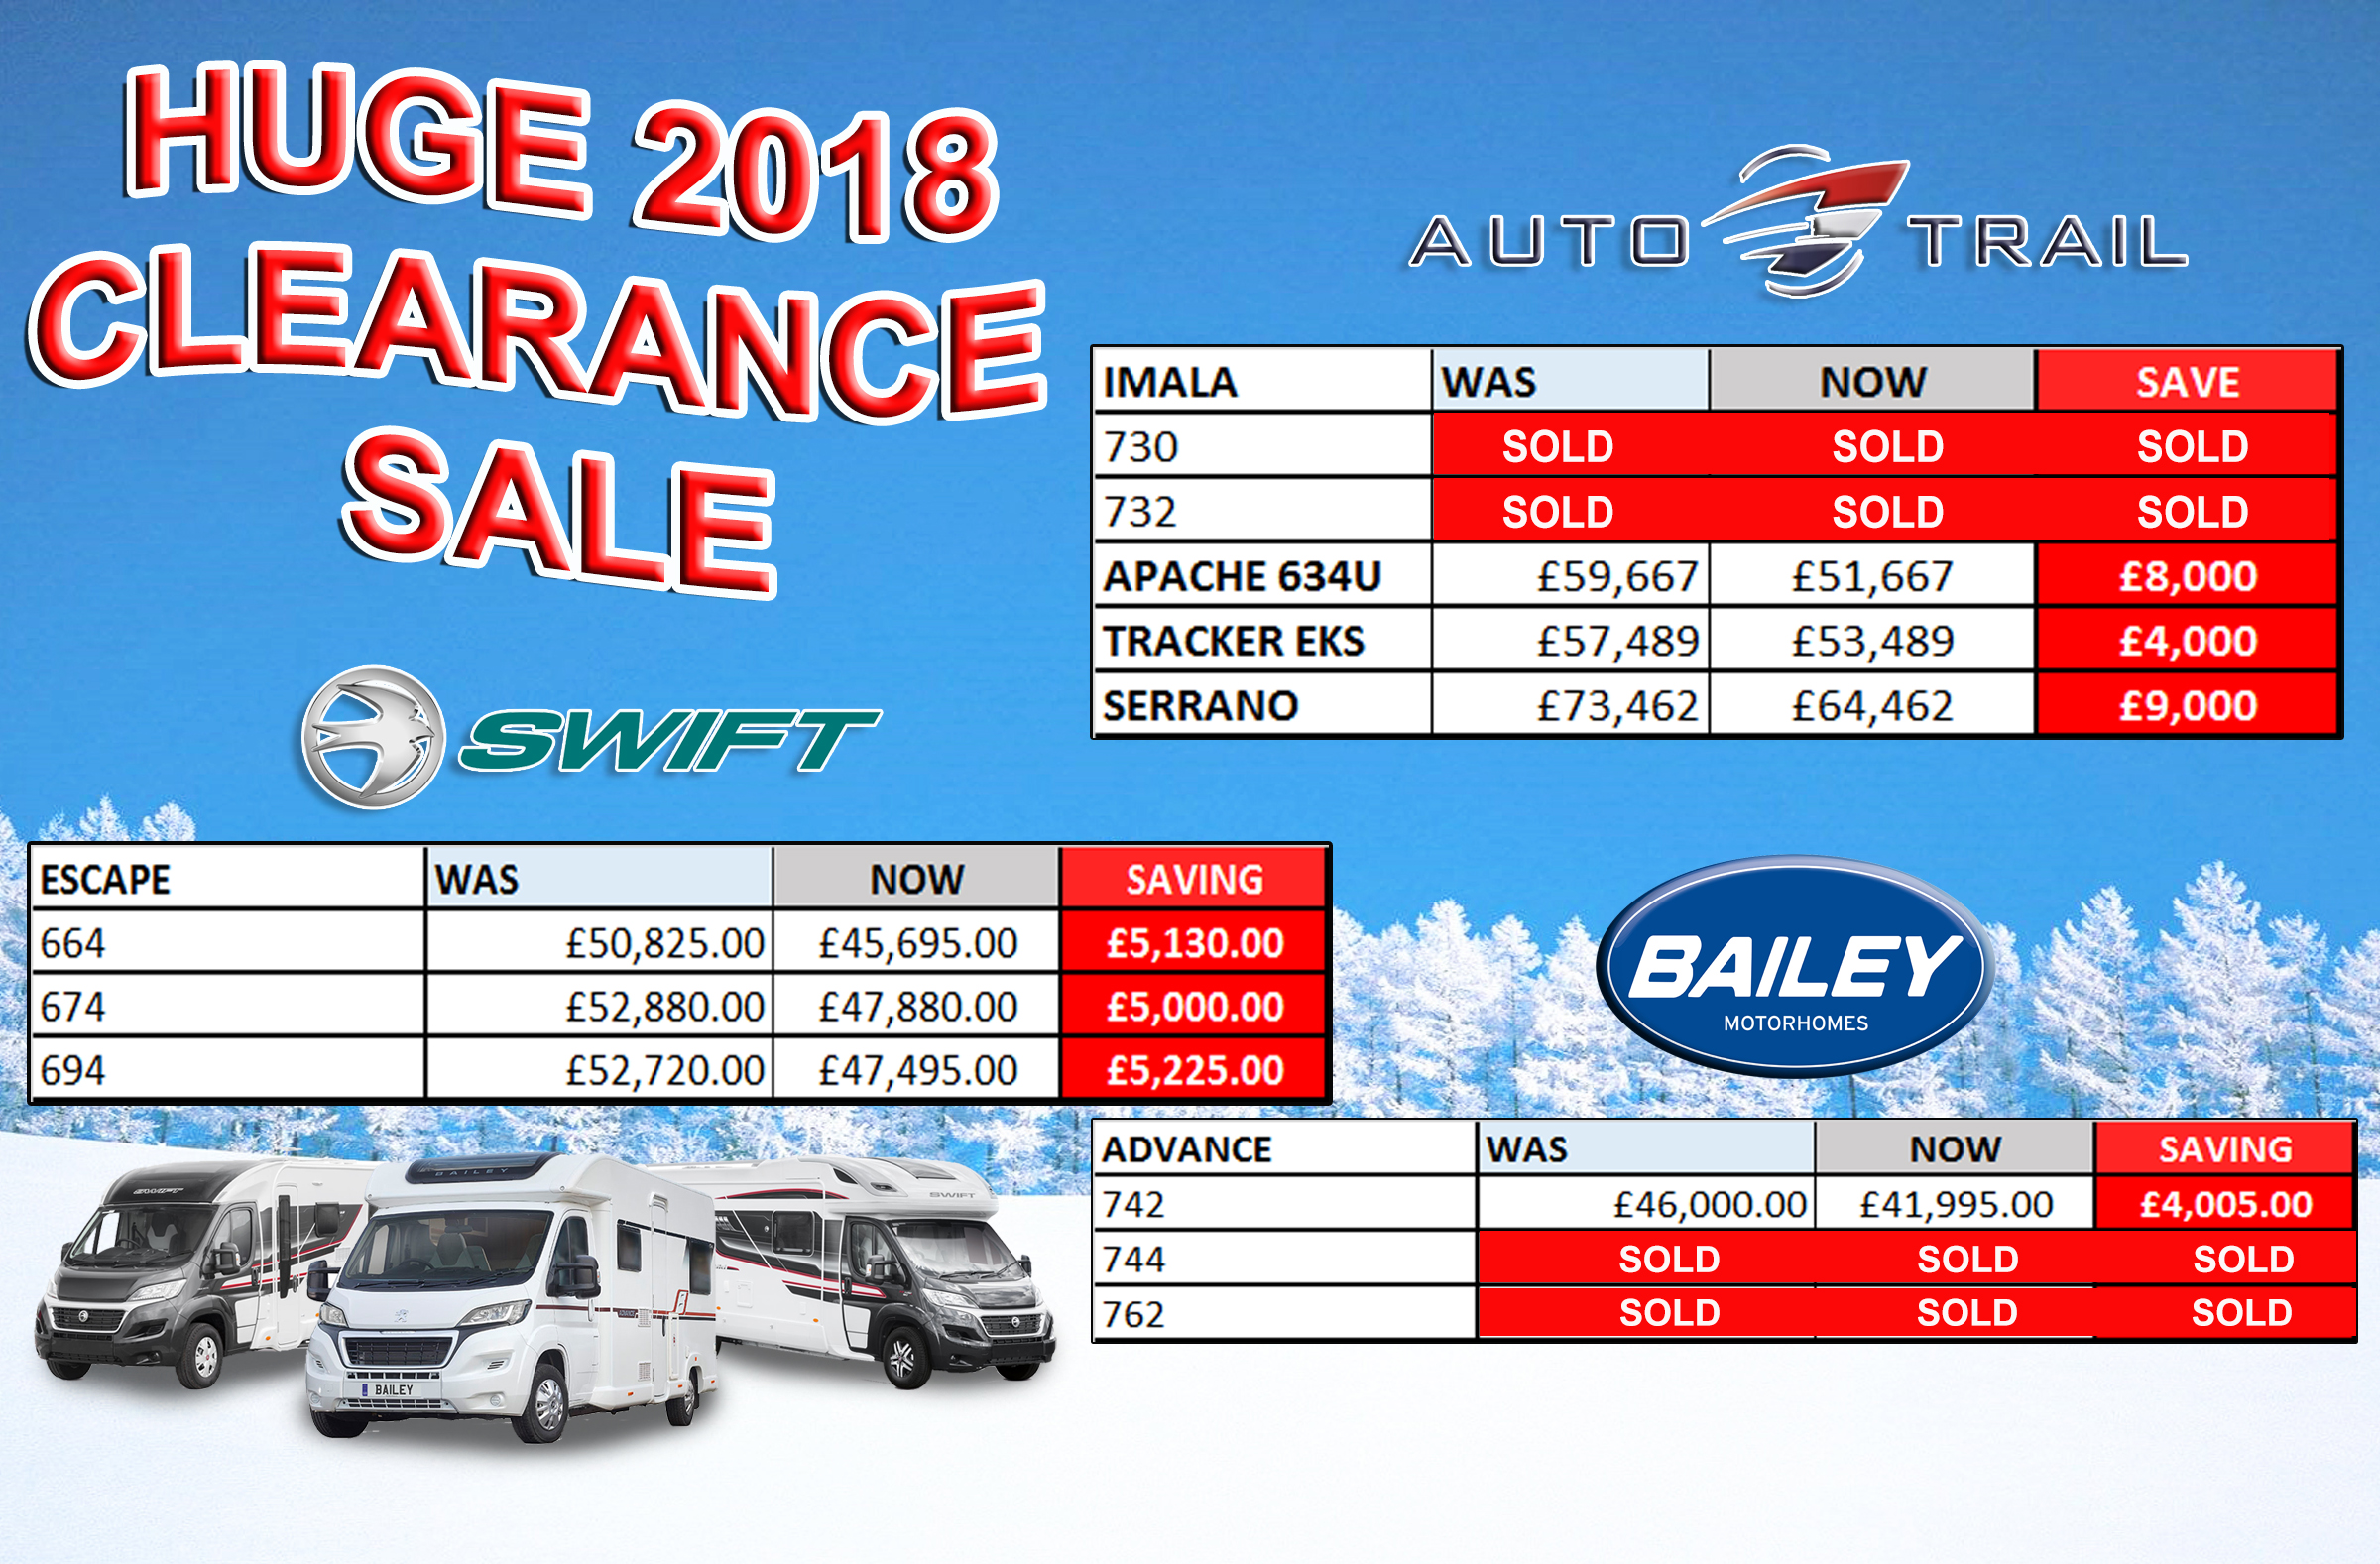 Clearance2018 motorhomes UPDATE3